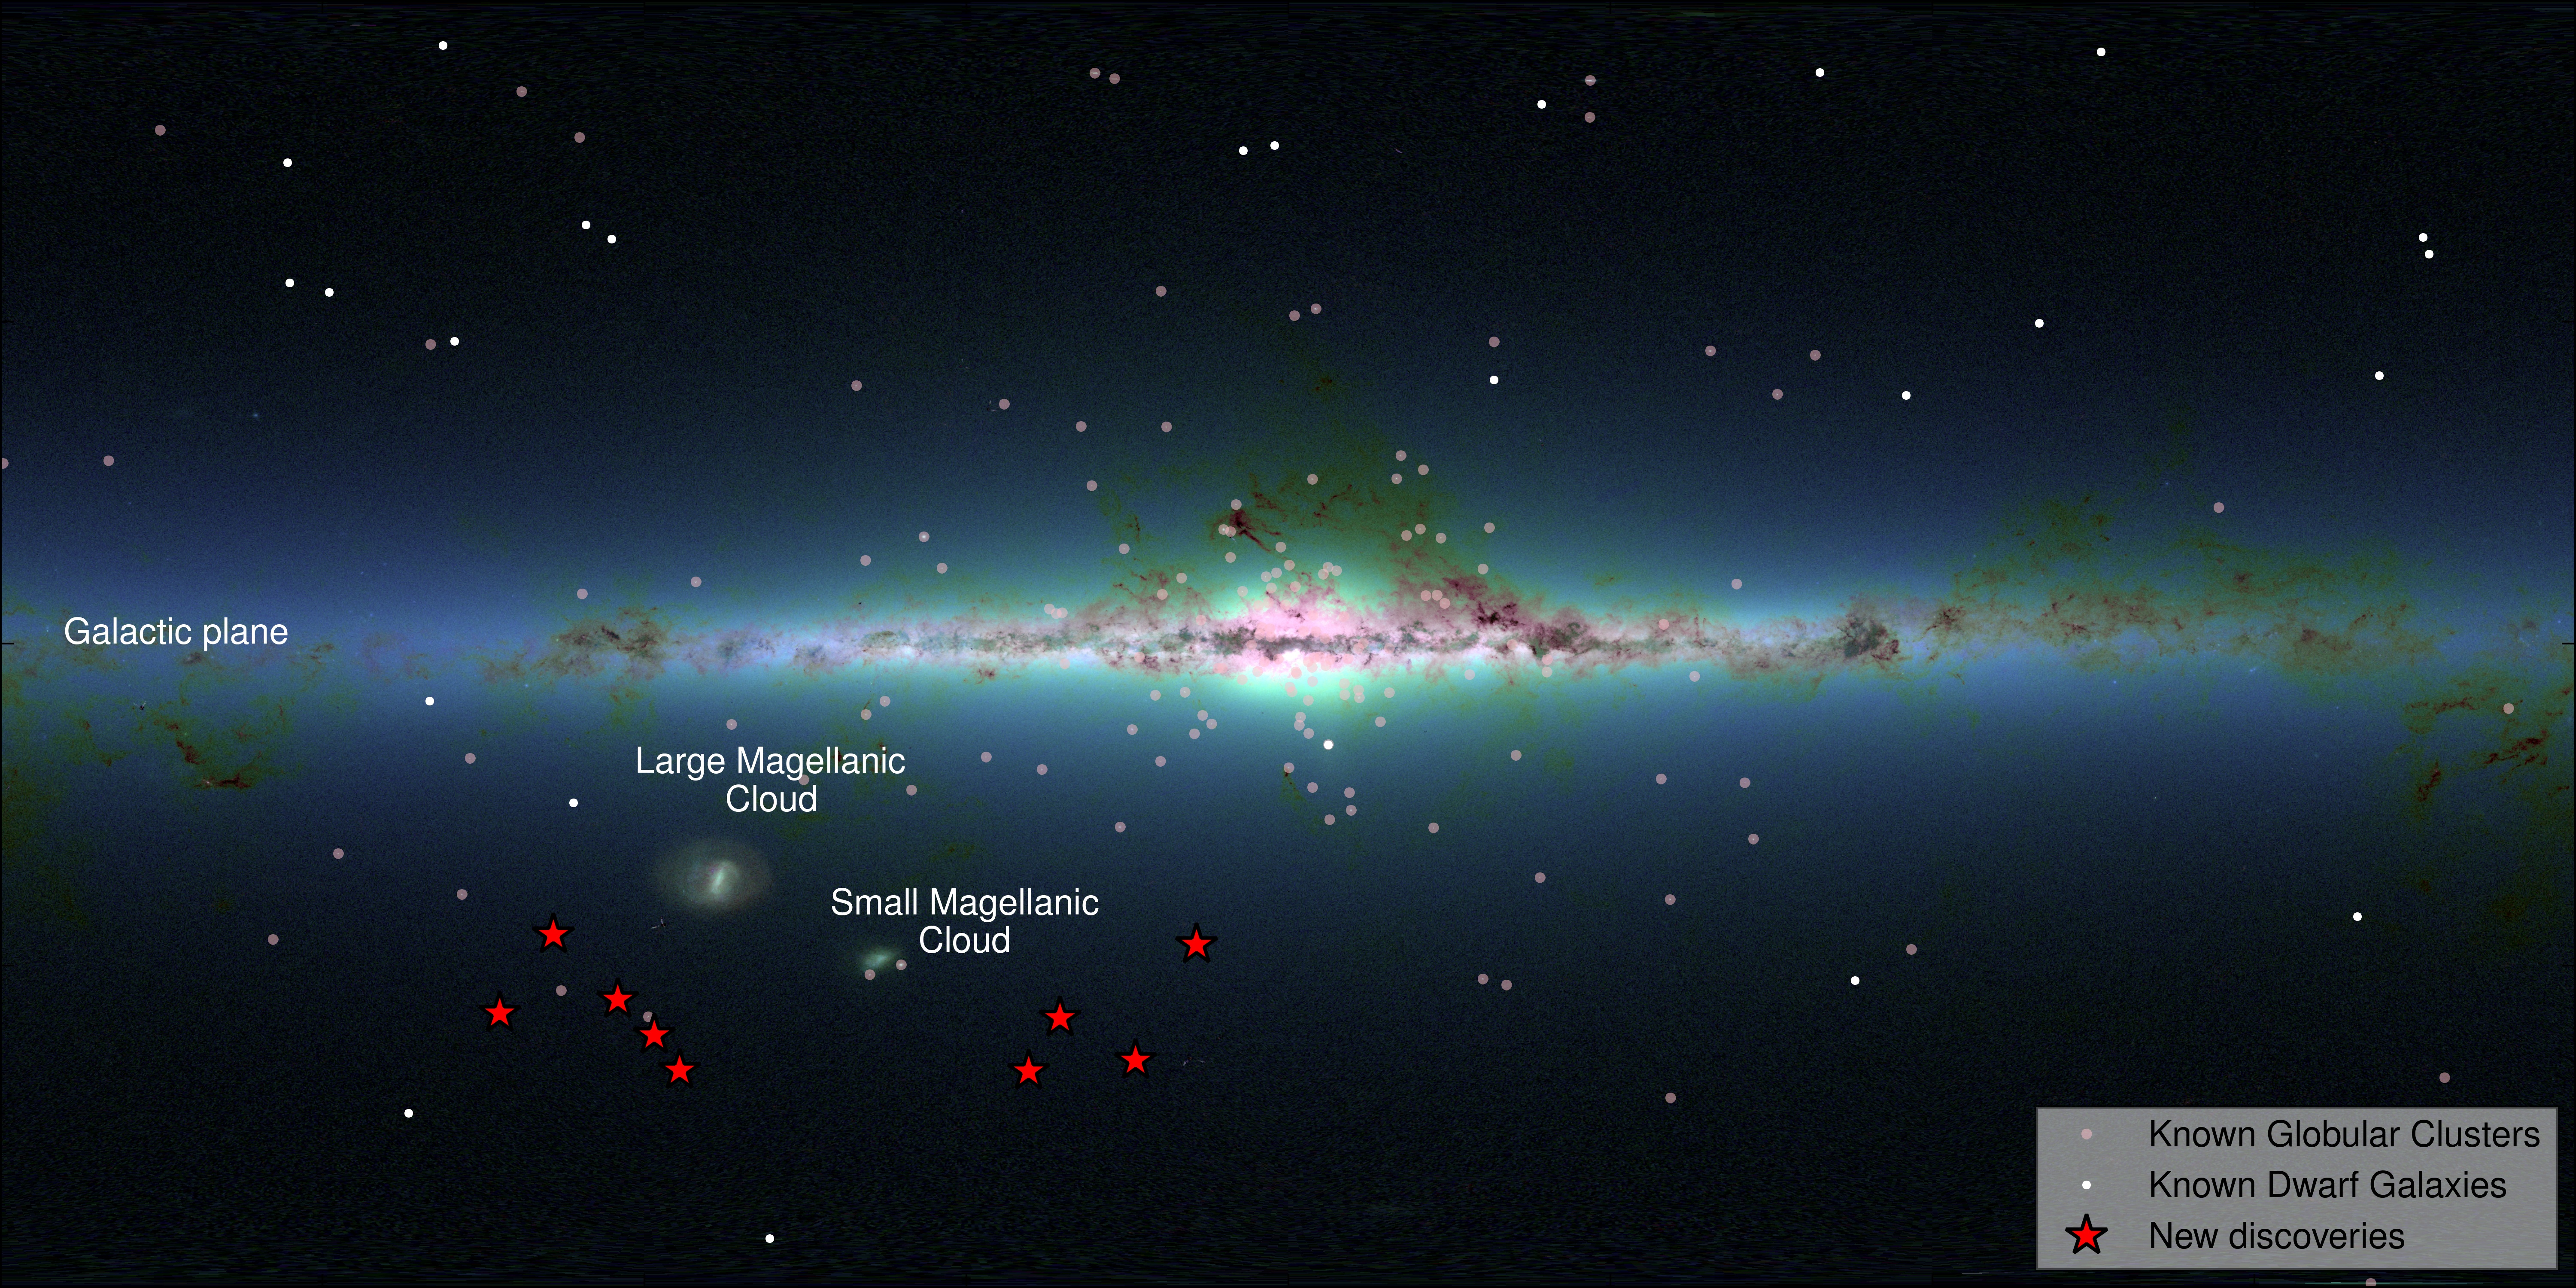 Milky Way Has More Satellite Galaxies Science Wire EarthSky - Astronomical map of galaxies in the us